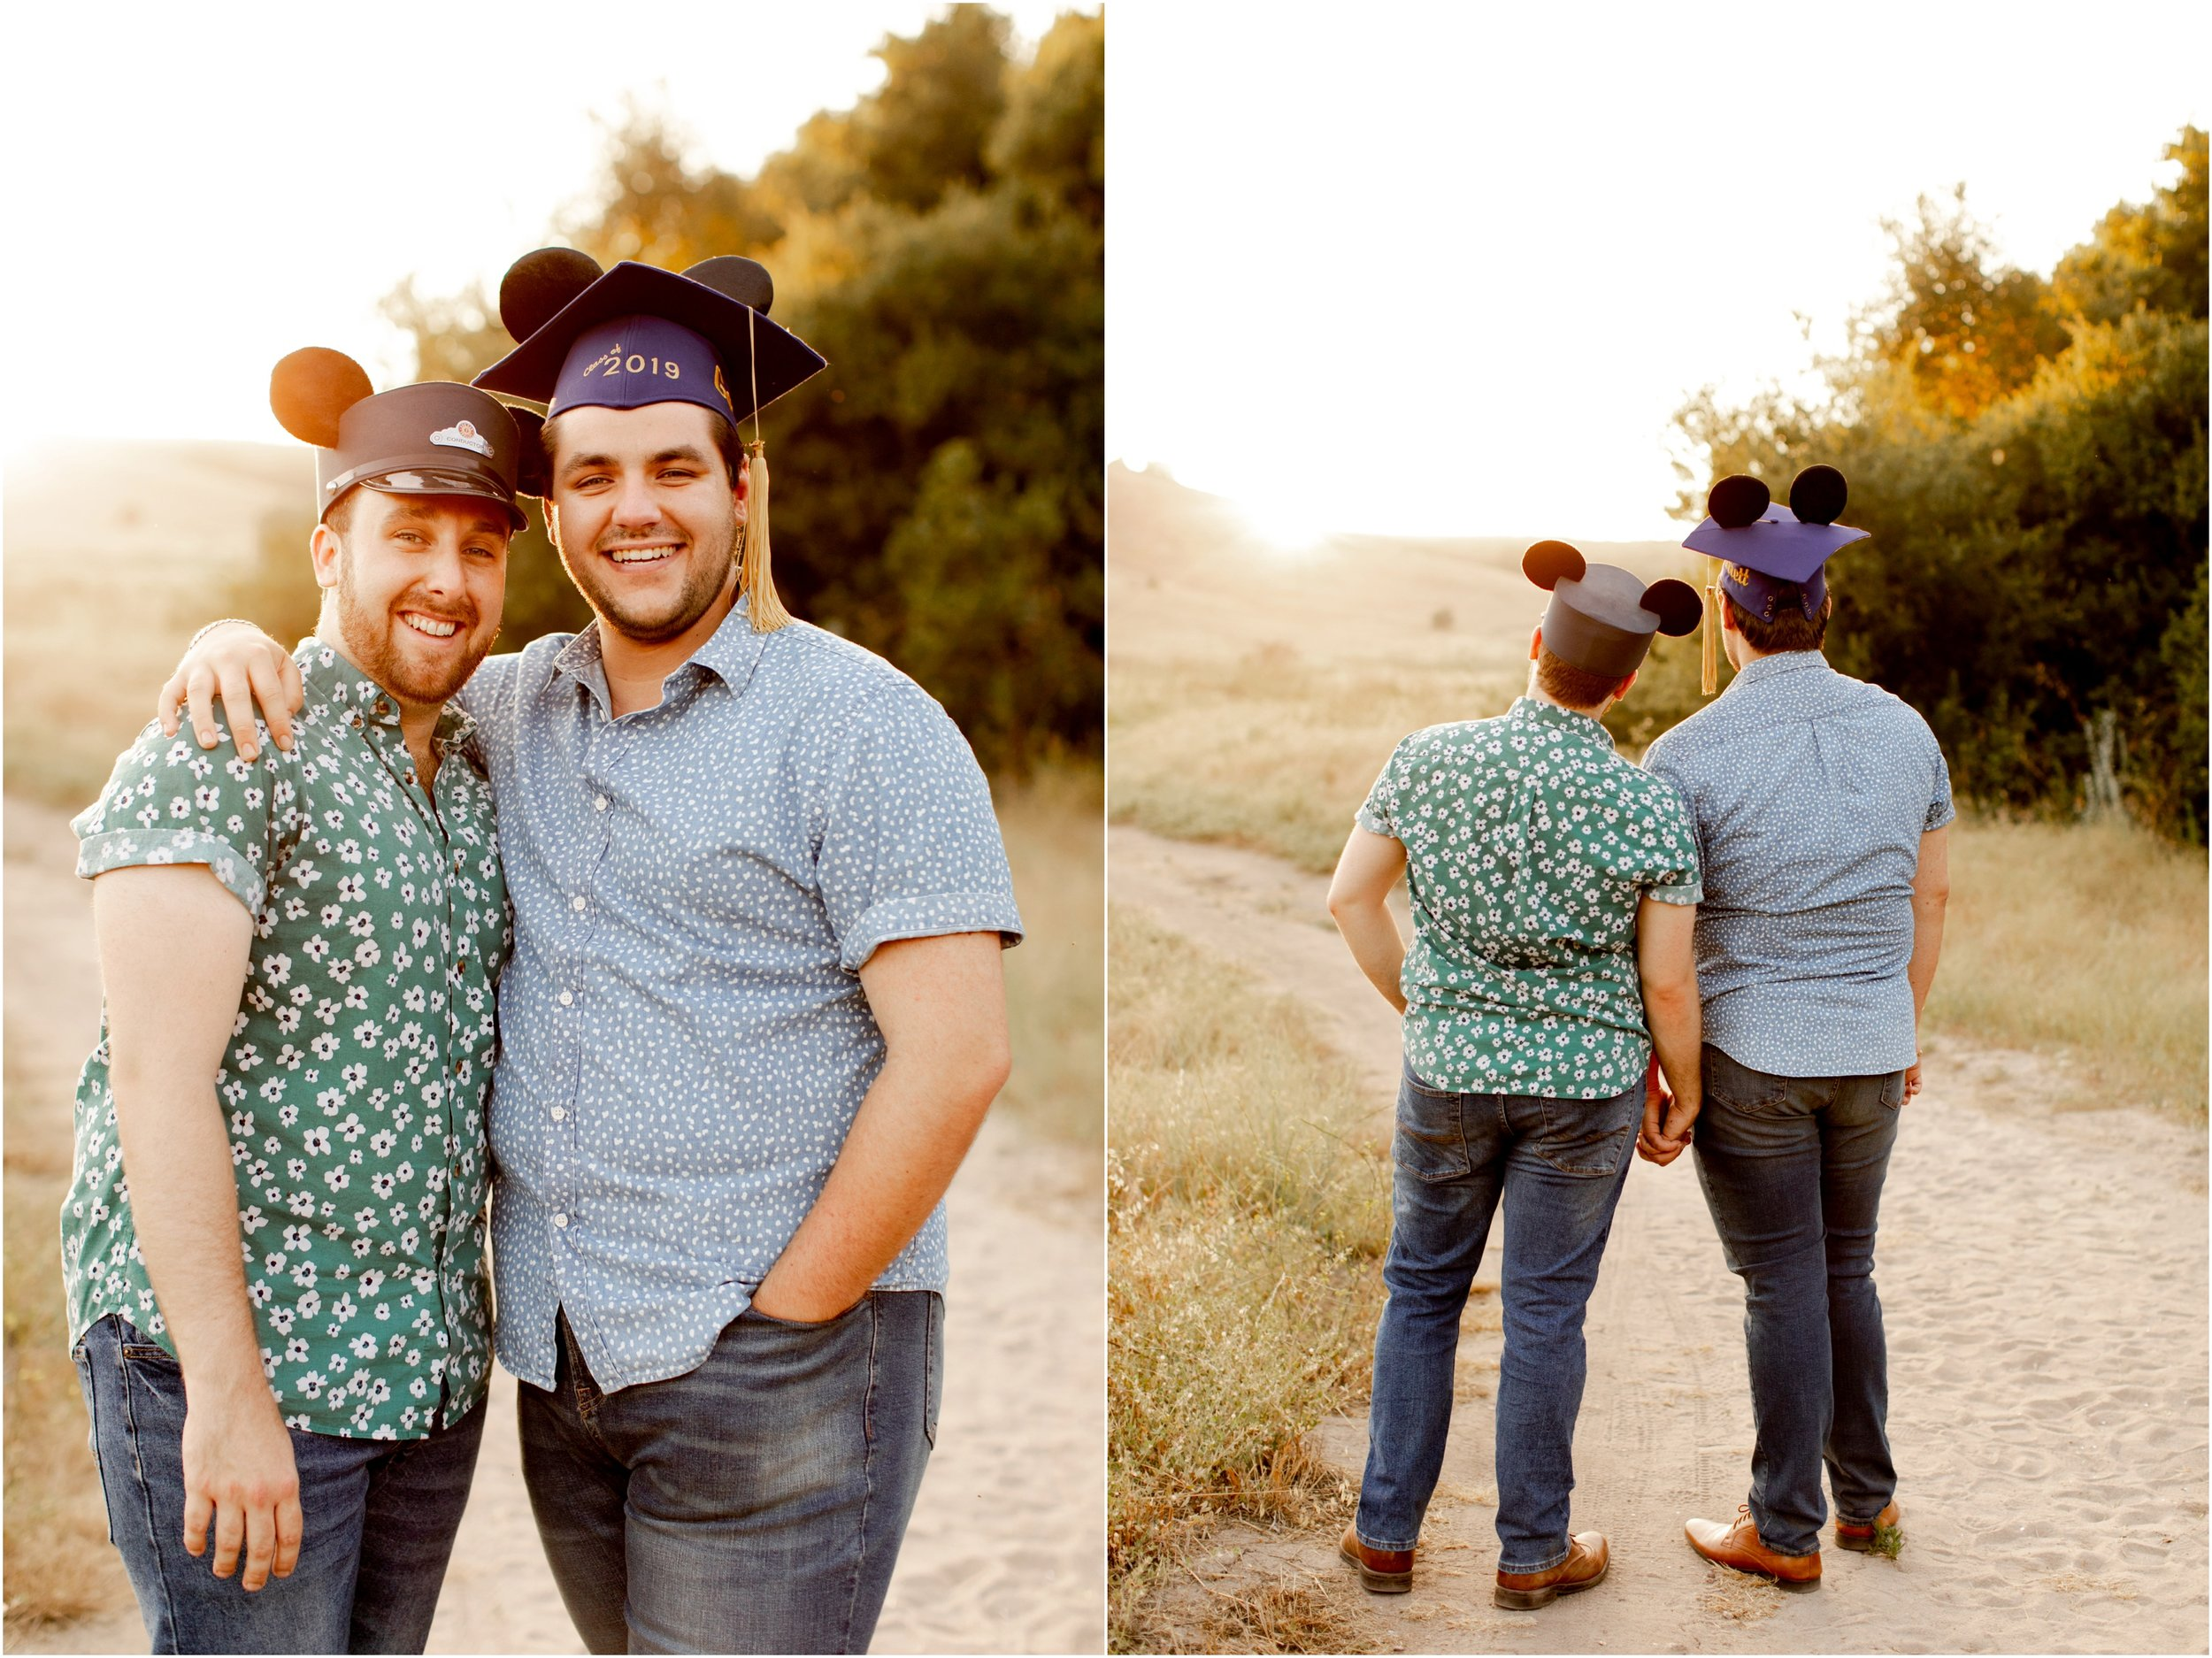 Southern California Engagement Photographer, California Engagement Photographer, Disney Engagement, Palm Springs Engagement, San Diego Engagement, Desert Engagement, Joshua Tree Engagement, Destination Engagement Session, Orange County Engagement, Pioneertown Engagement session, Palm Springs engagement photographer, Joshua tree engagement photographer, Palm Springs Photographer, Joshua Tree Photographer, San Diego Photographer, Same Sex Photographer, Same Sex Engagement Session, LGBQT